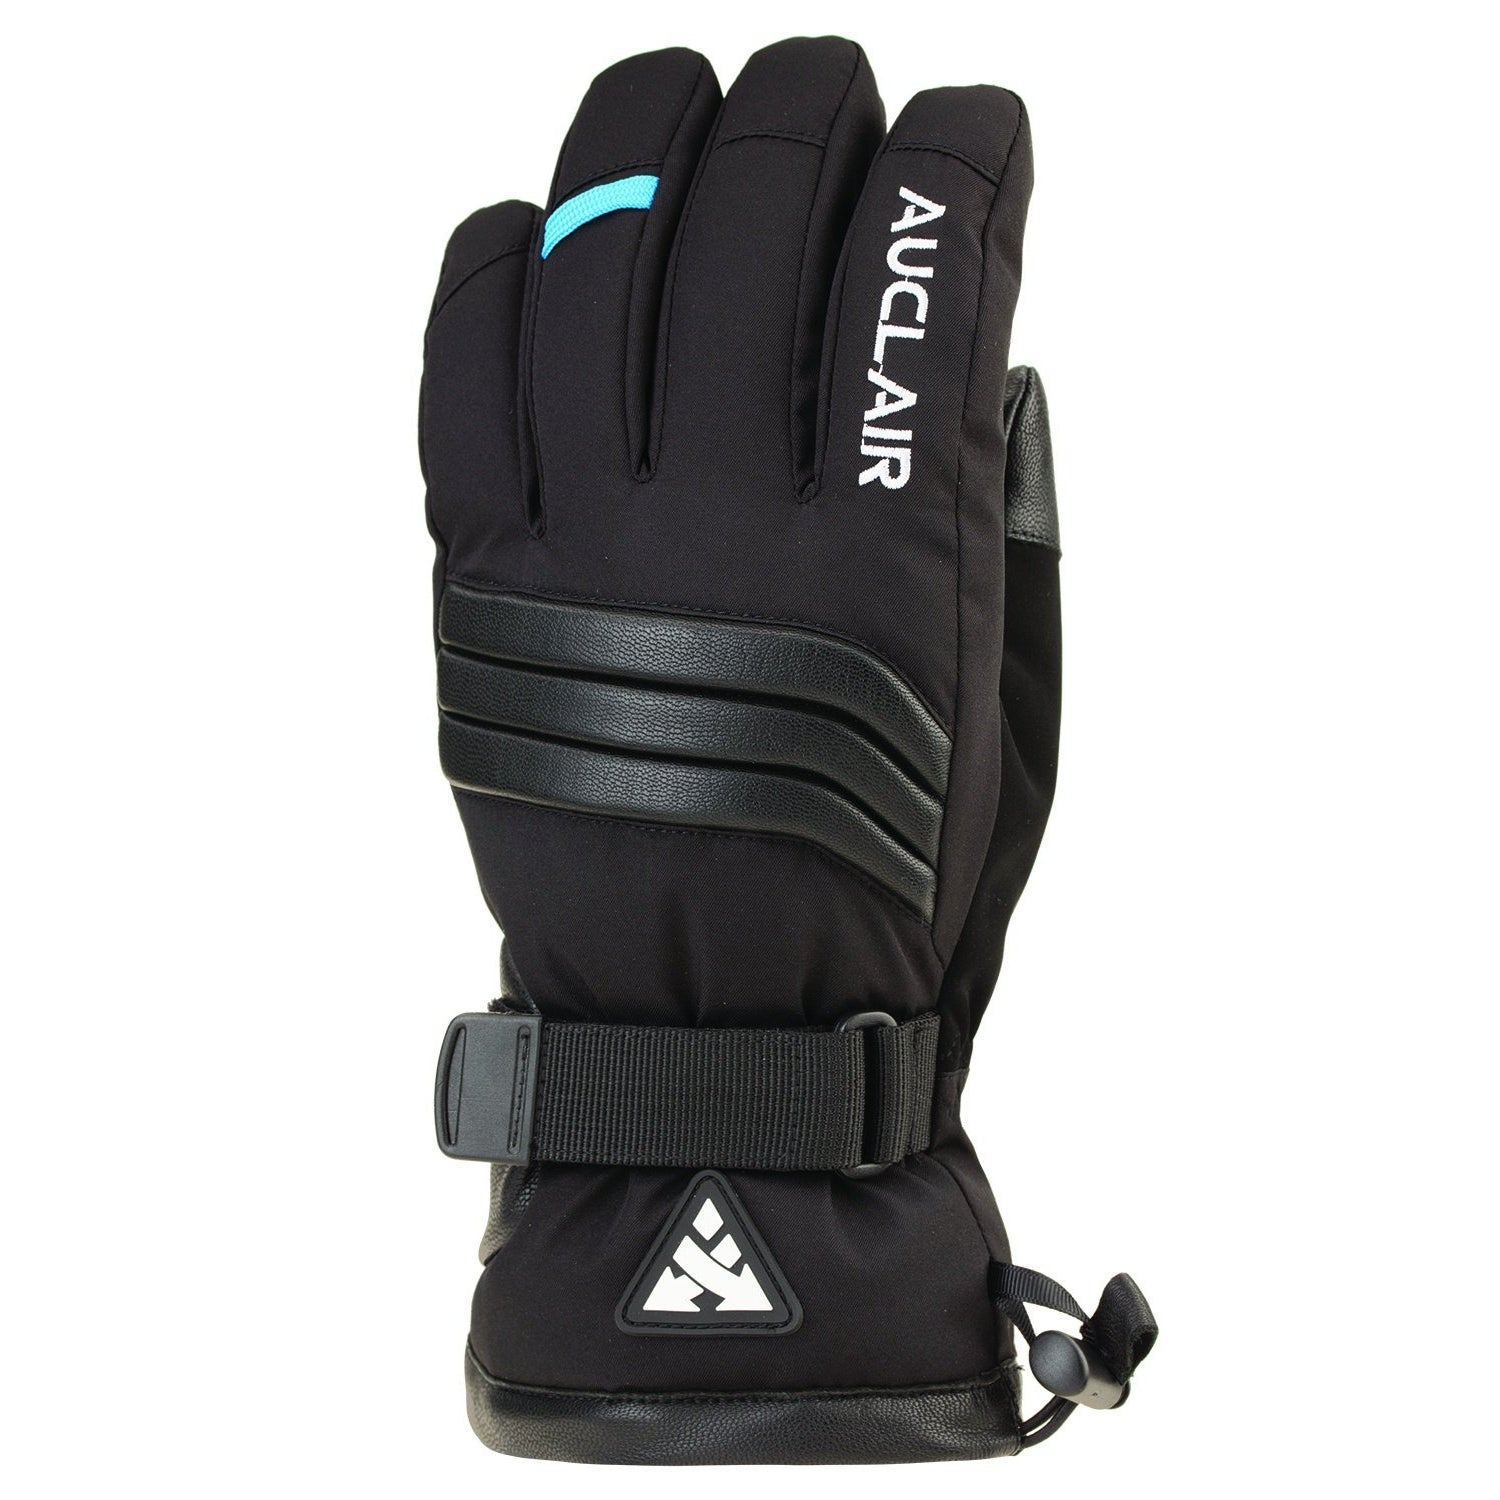 Auclair 2021 Glacier Valley SS Glove